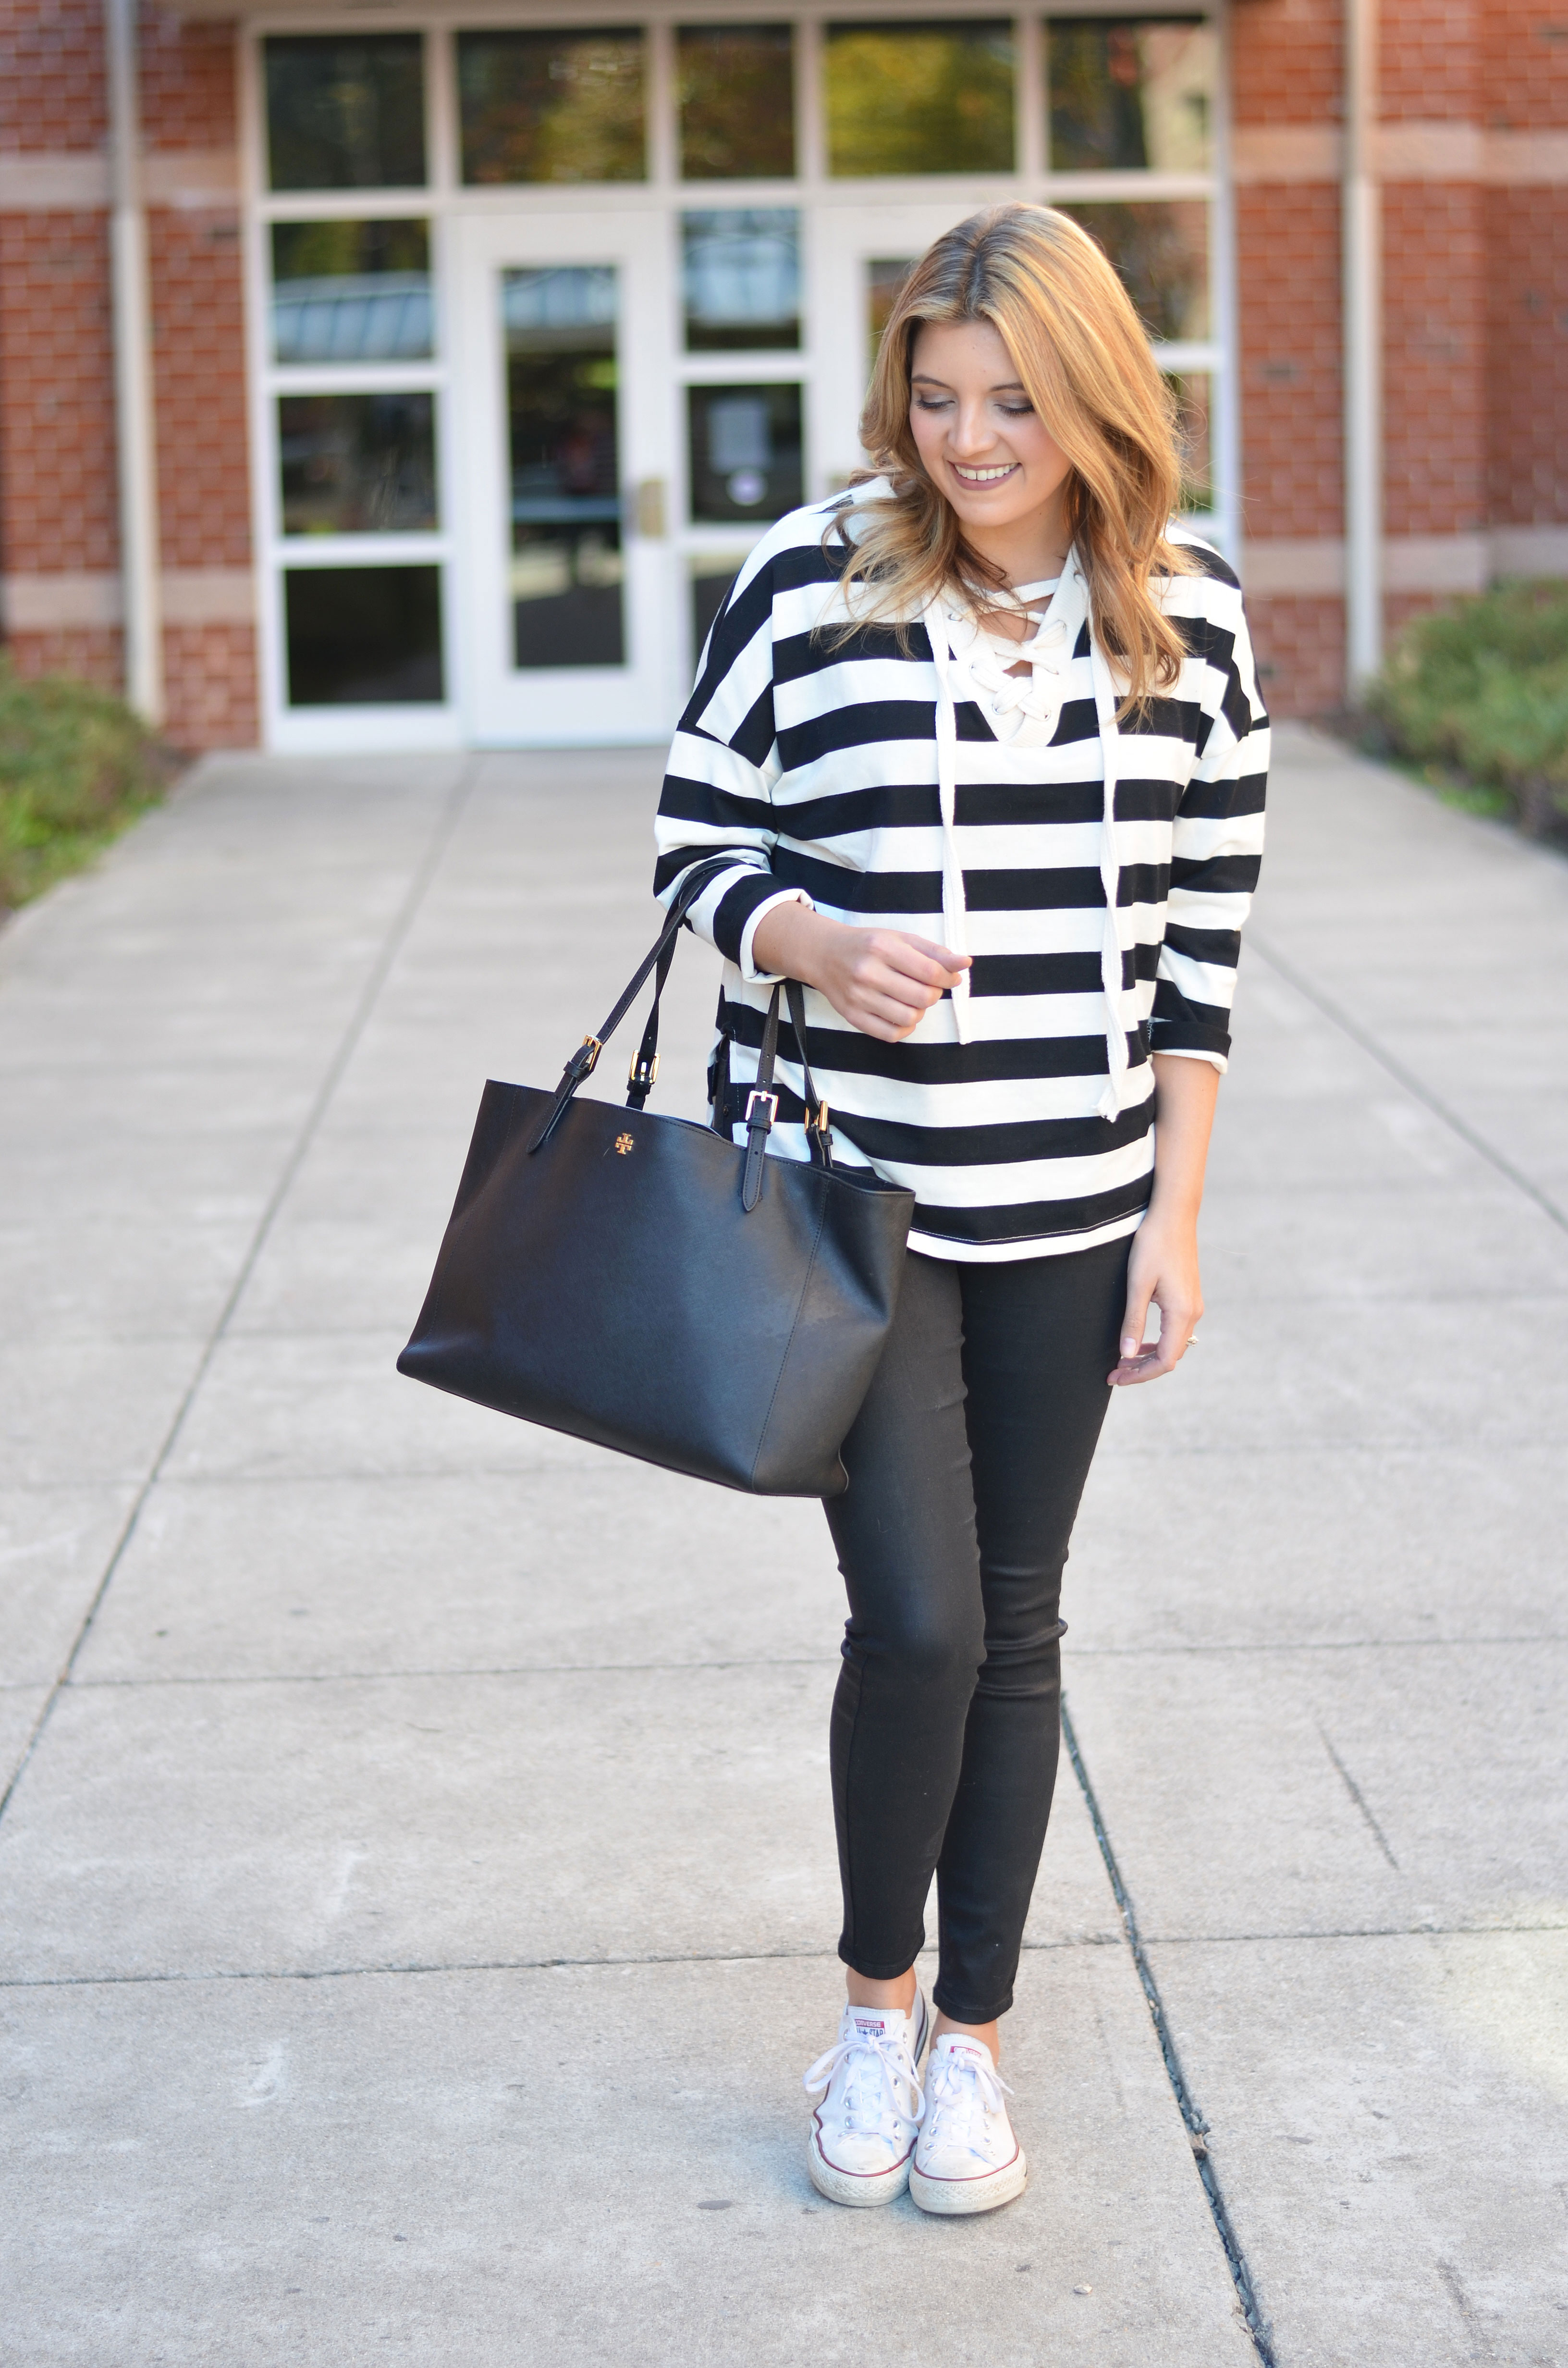 cute weekend outfit - stripe lace up top with black coated jeans outfit | www.bylaurenm.com